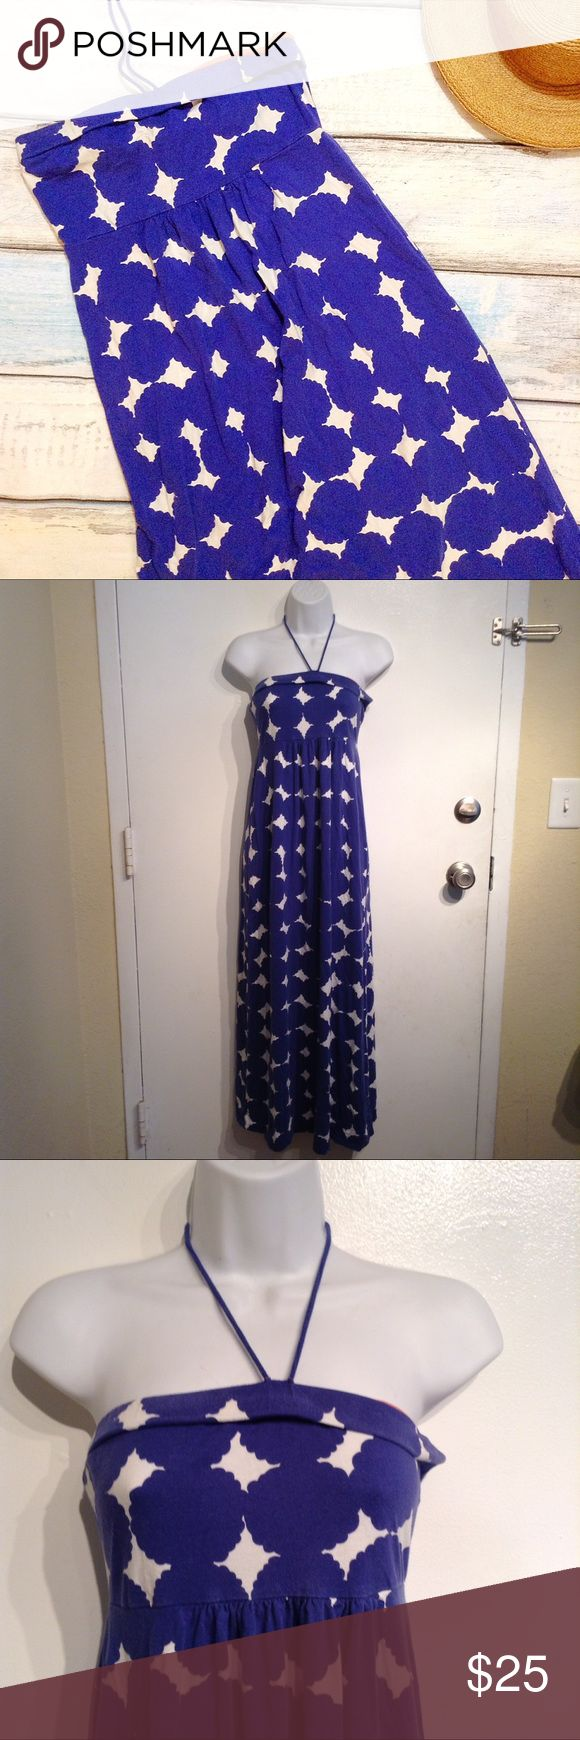 """Boden Blue & White Diamond Geometric Maxi Dress Boden blue and white geometric diamond maxi dress with halter tie strings. Could also tuck the strings and we worn strapless. Does have wash wear and the elastic band at the top is twisted. Size US 4R. Measures 13.5"""" flat armpit to armpit, 13"""" flat at waist, and 46"""" armpit to hem. No modeling. Smoke free home. I do discount bundles. Boden Dresses Maxi"""